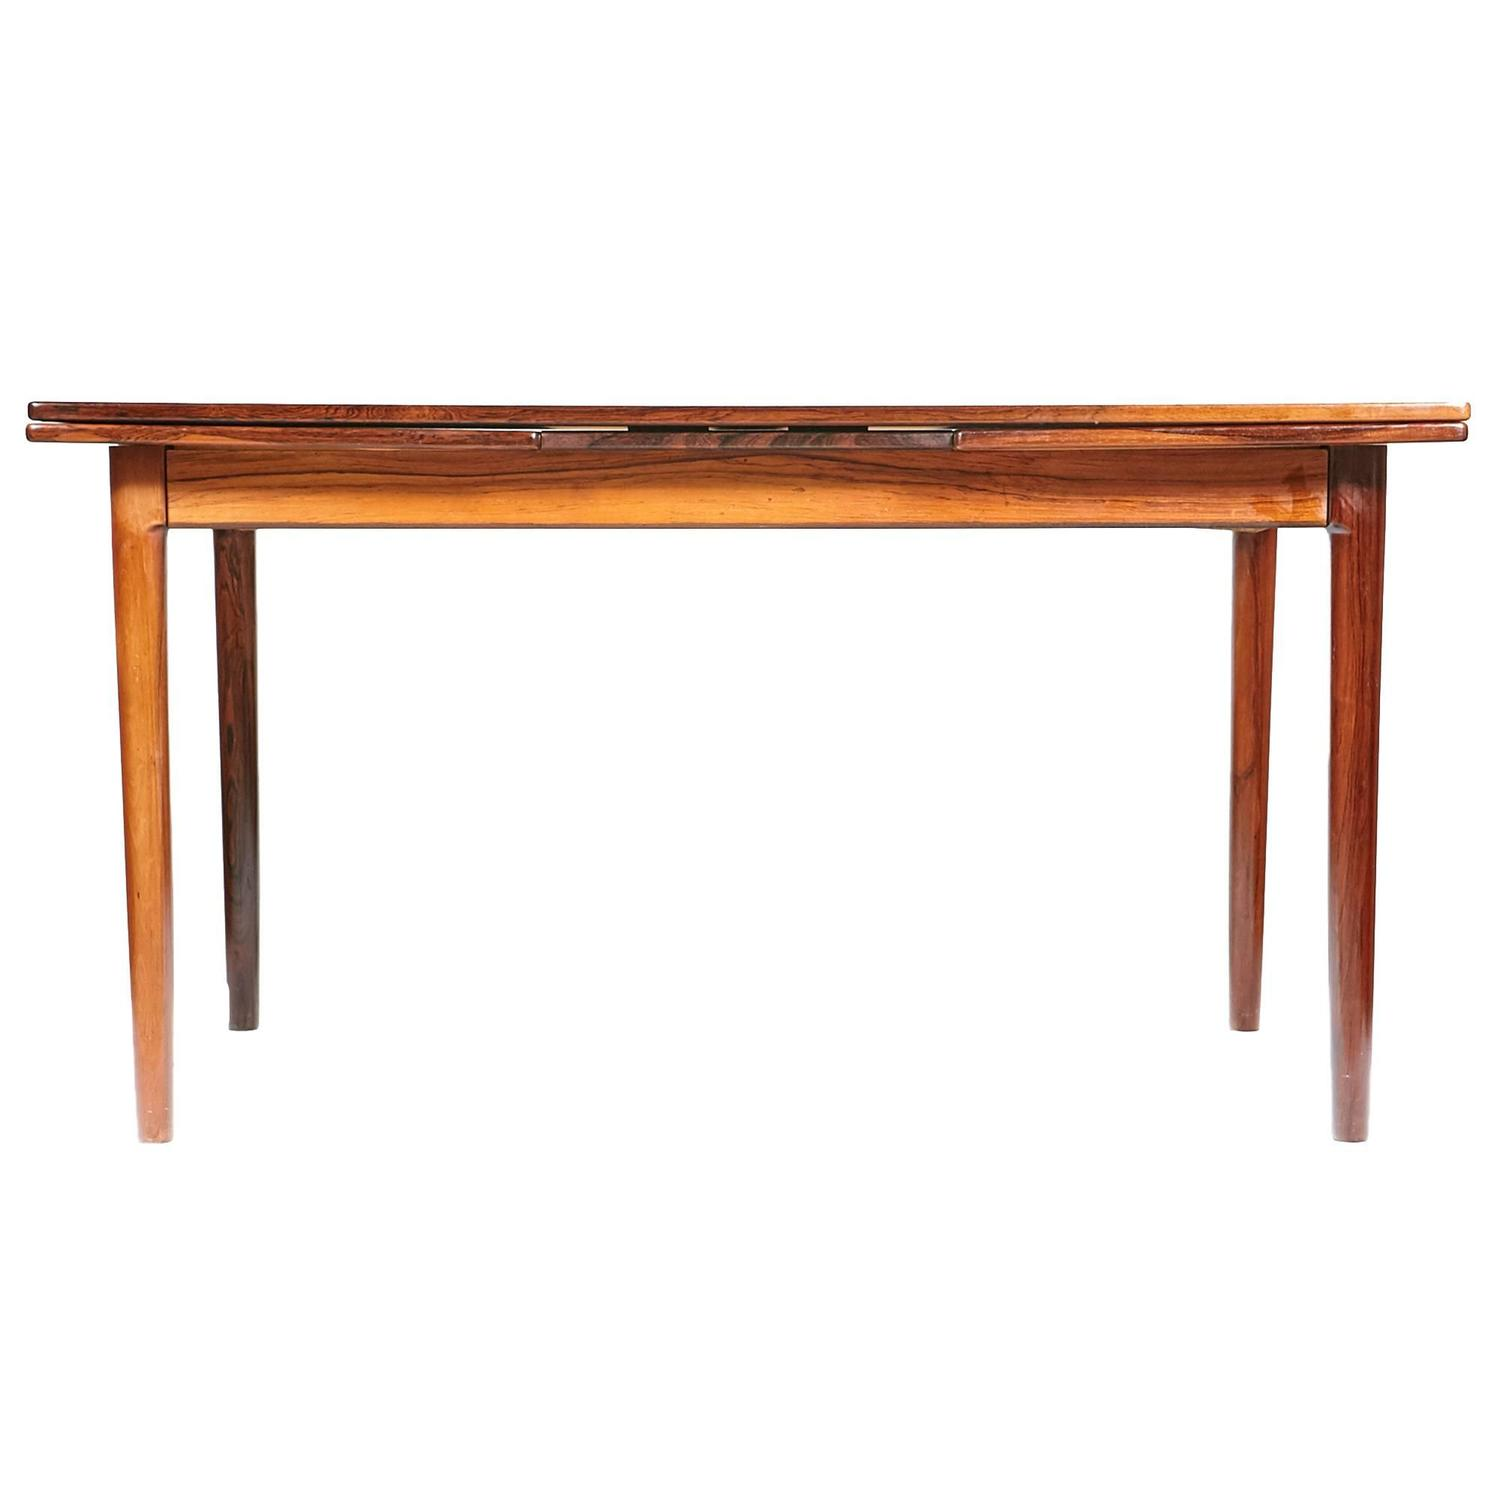 1960s bernhard pedersen and sons rosewood expandable dining table at 1stdibs - Dining room tables with extensions in design ...